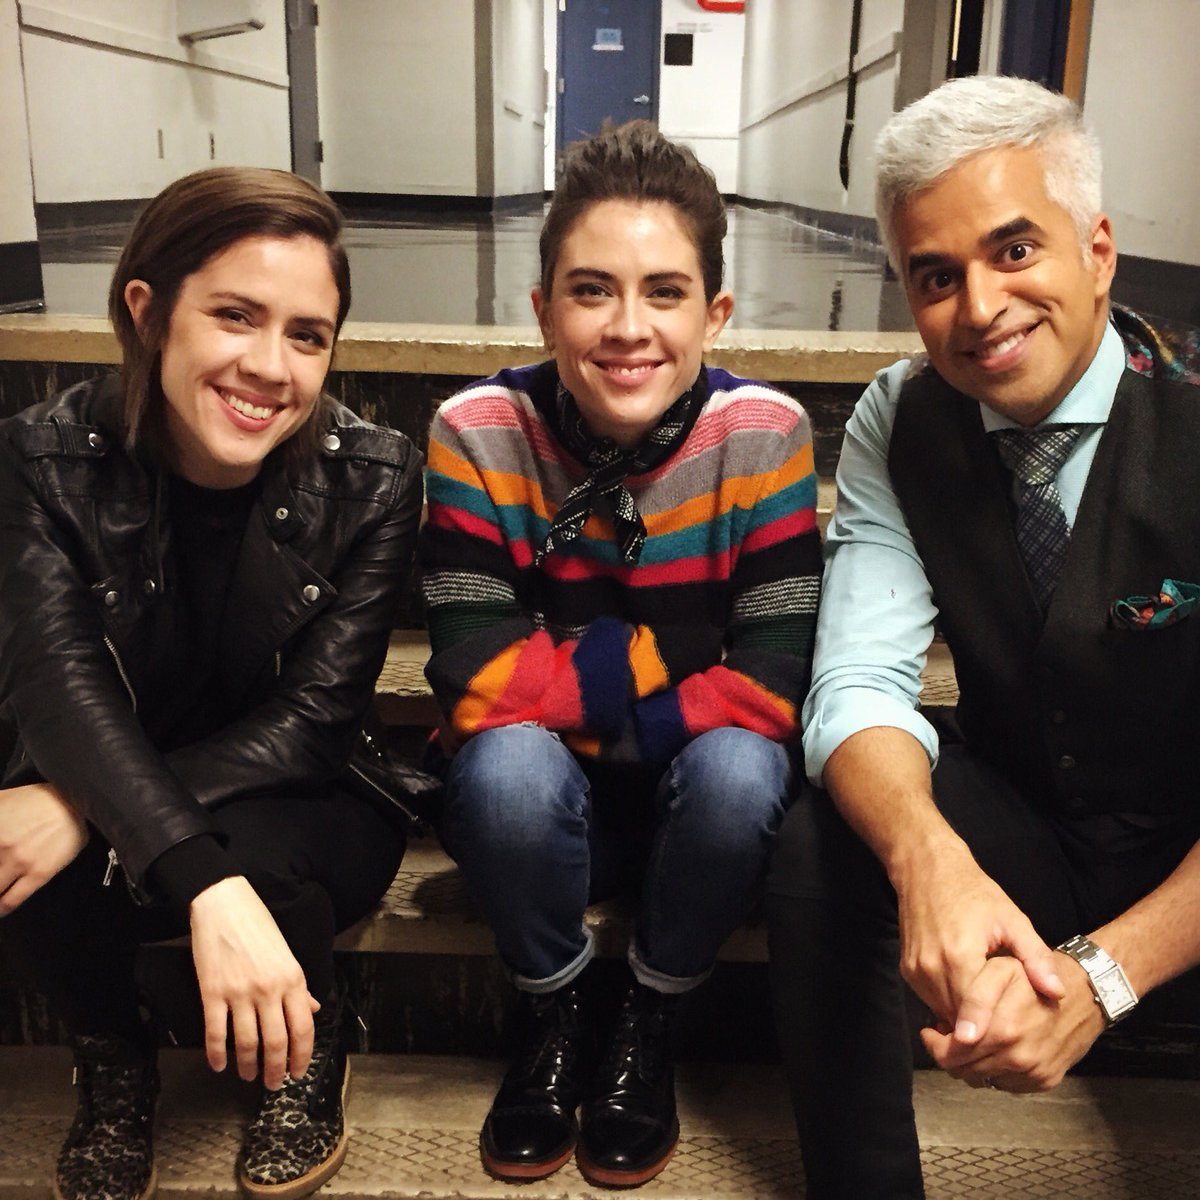 Catch the awesome @teganandsara on @BT_Vancouver Thurs at 740am! #LoveYouToDeath https://t.co/BcLtxkawtU